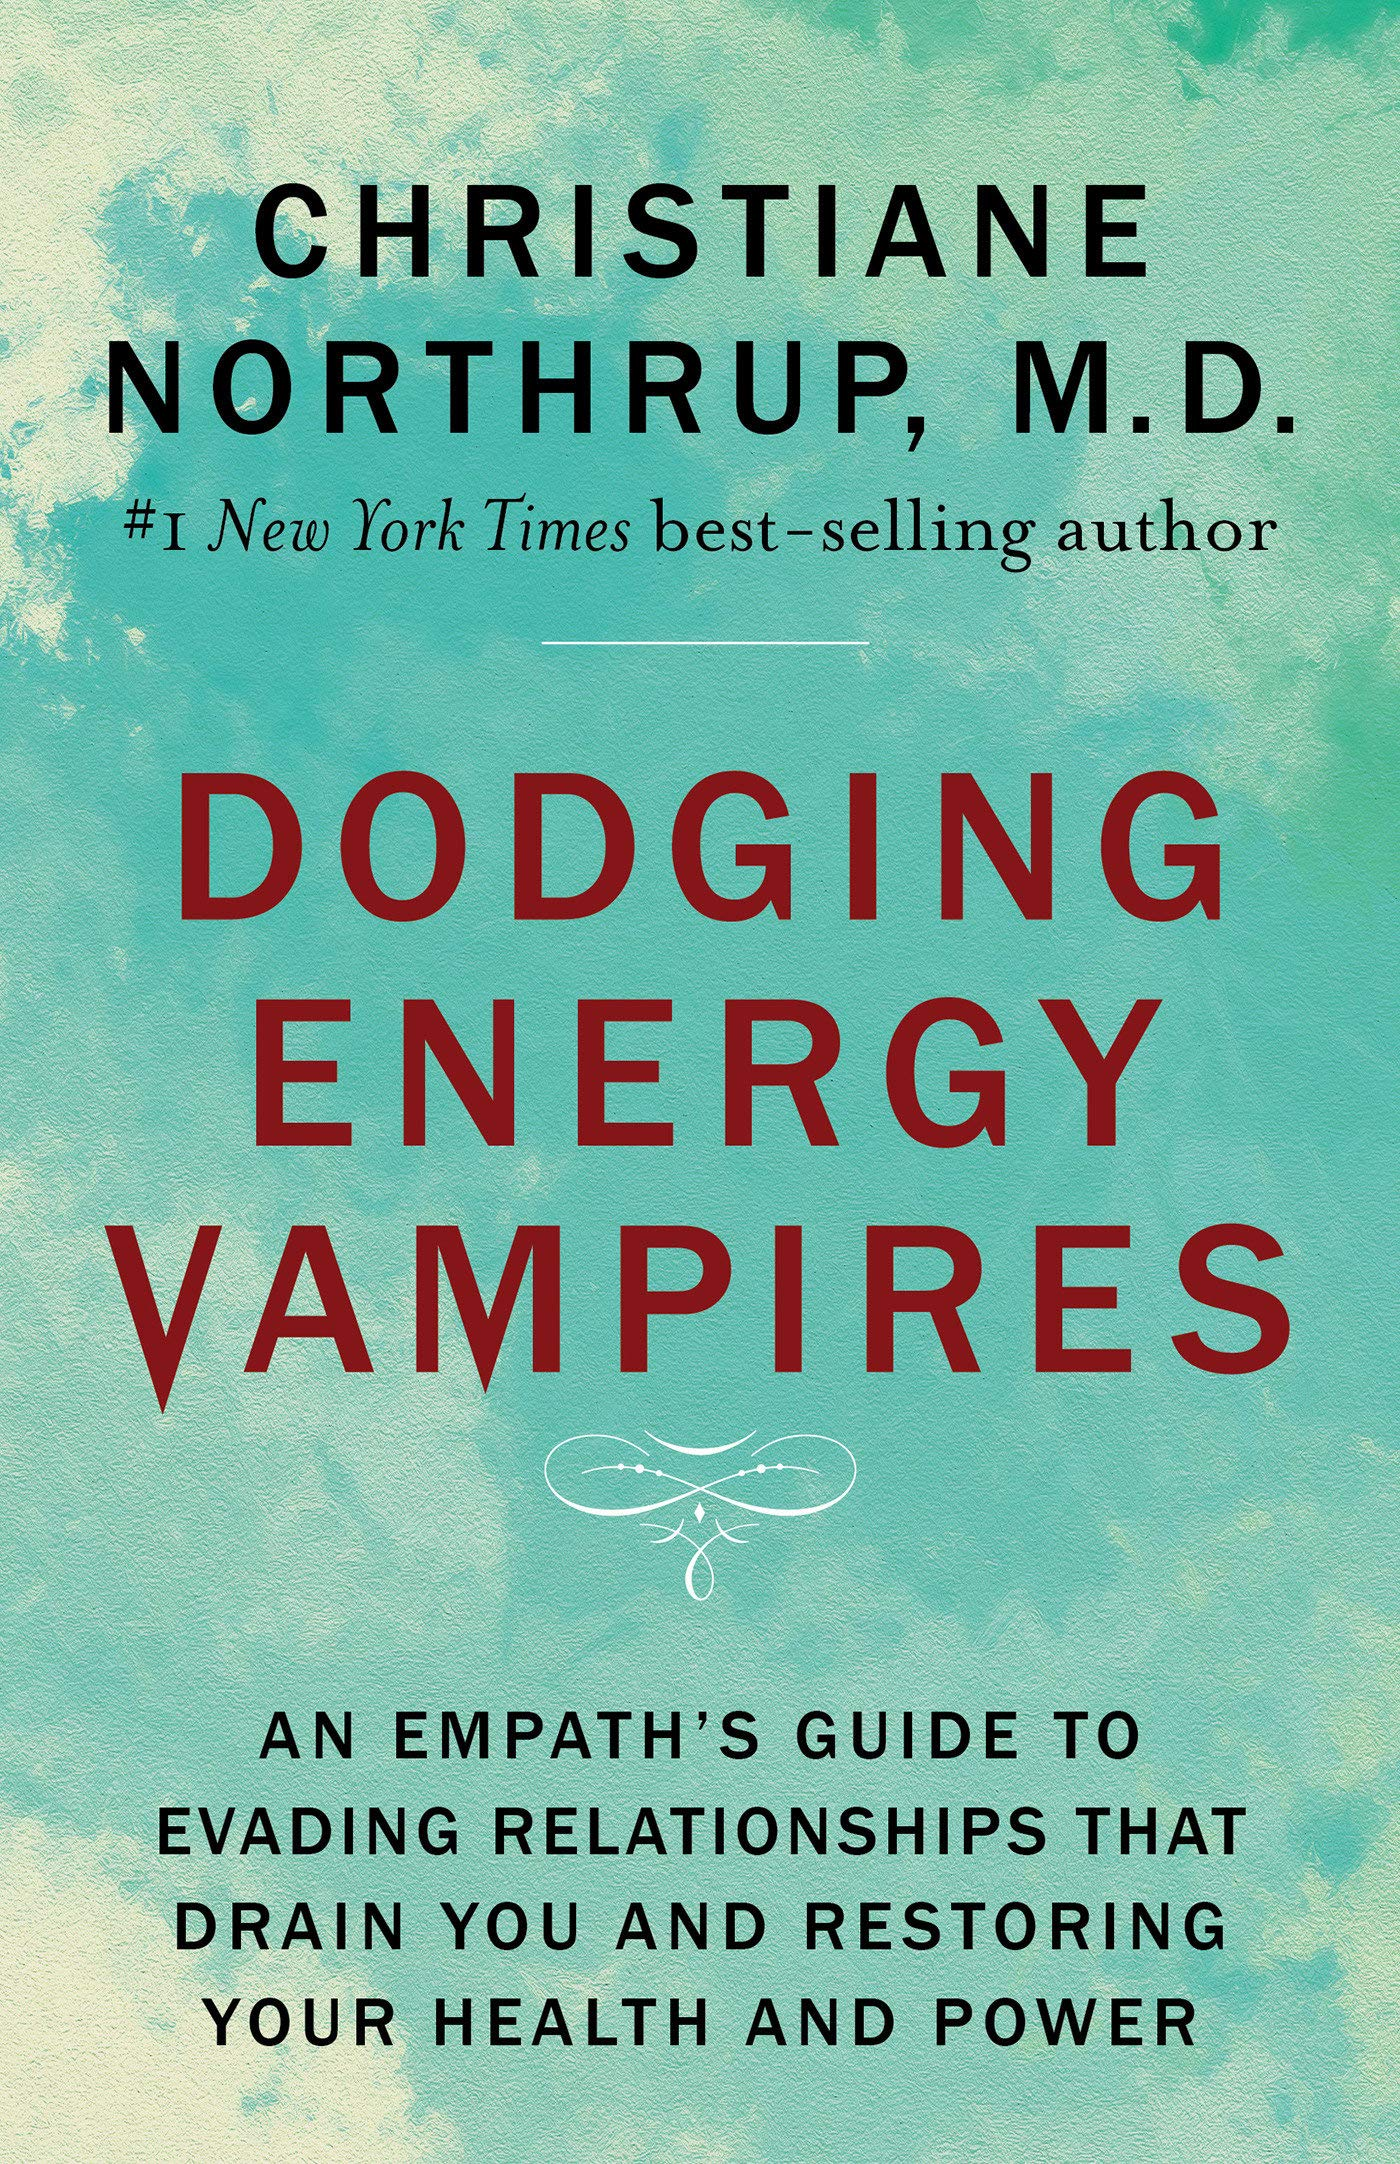 Dodging Energy Vampires: An Empath's Guide to Evading